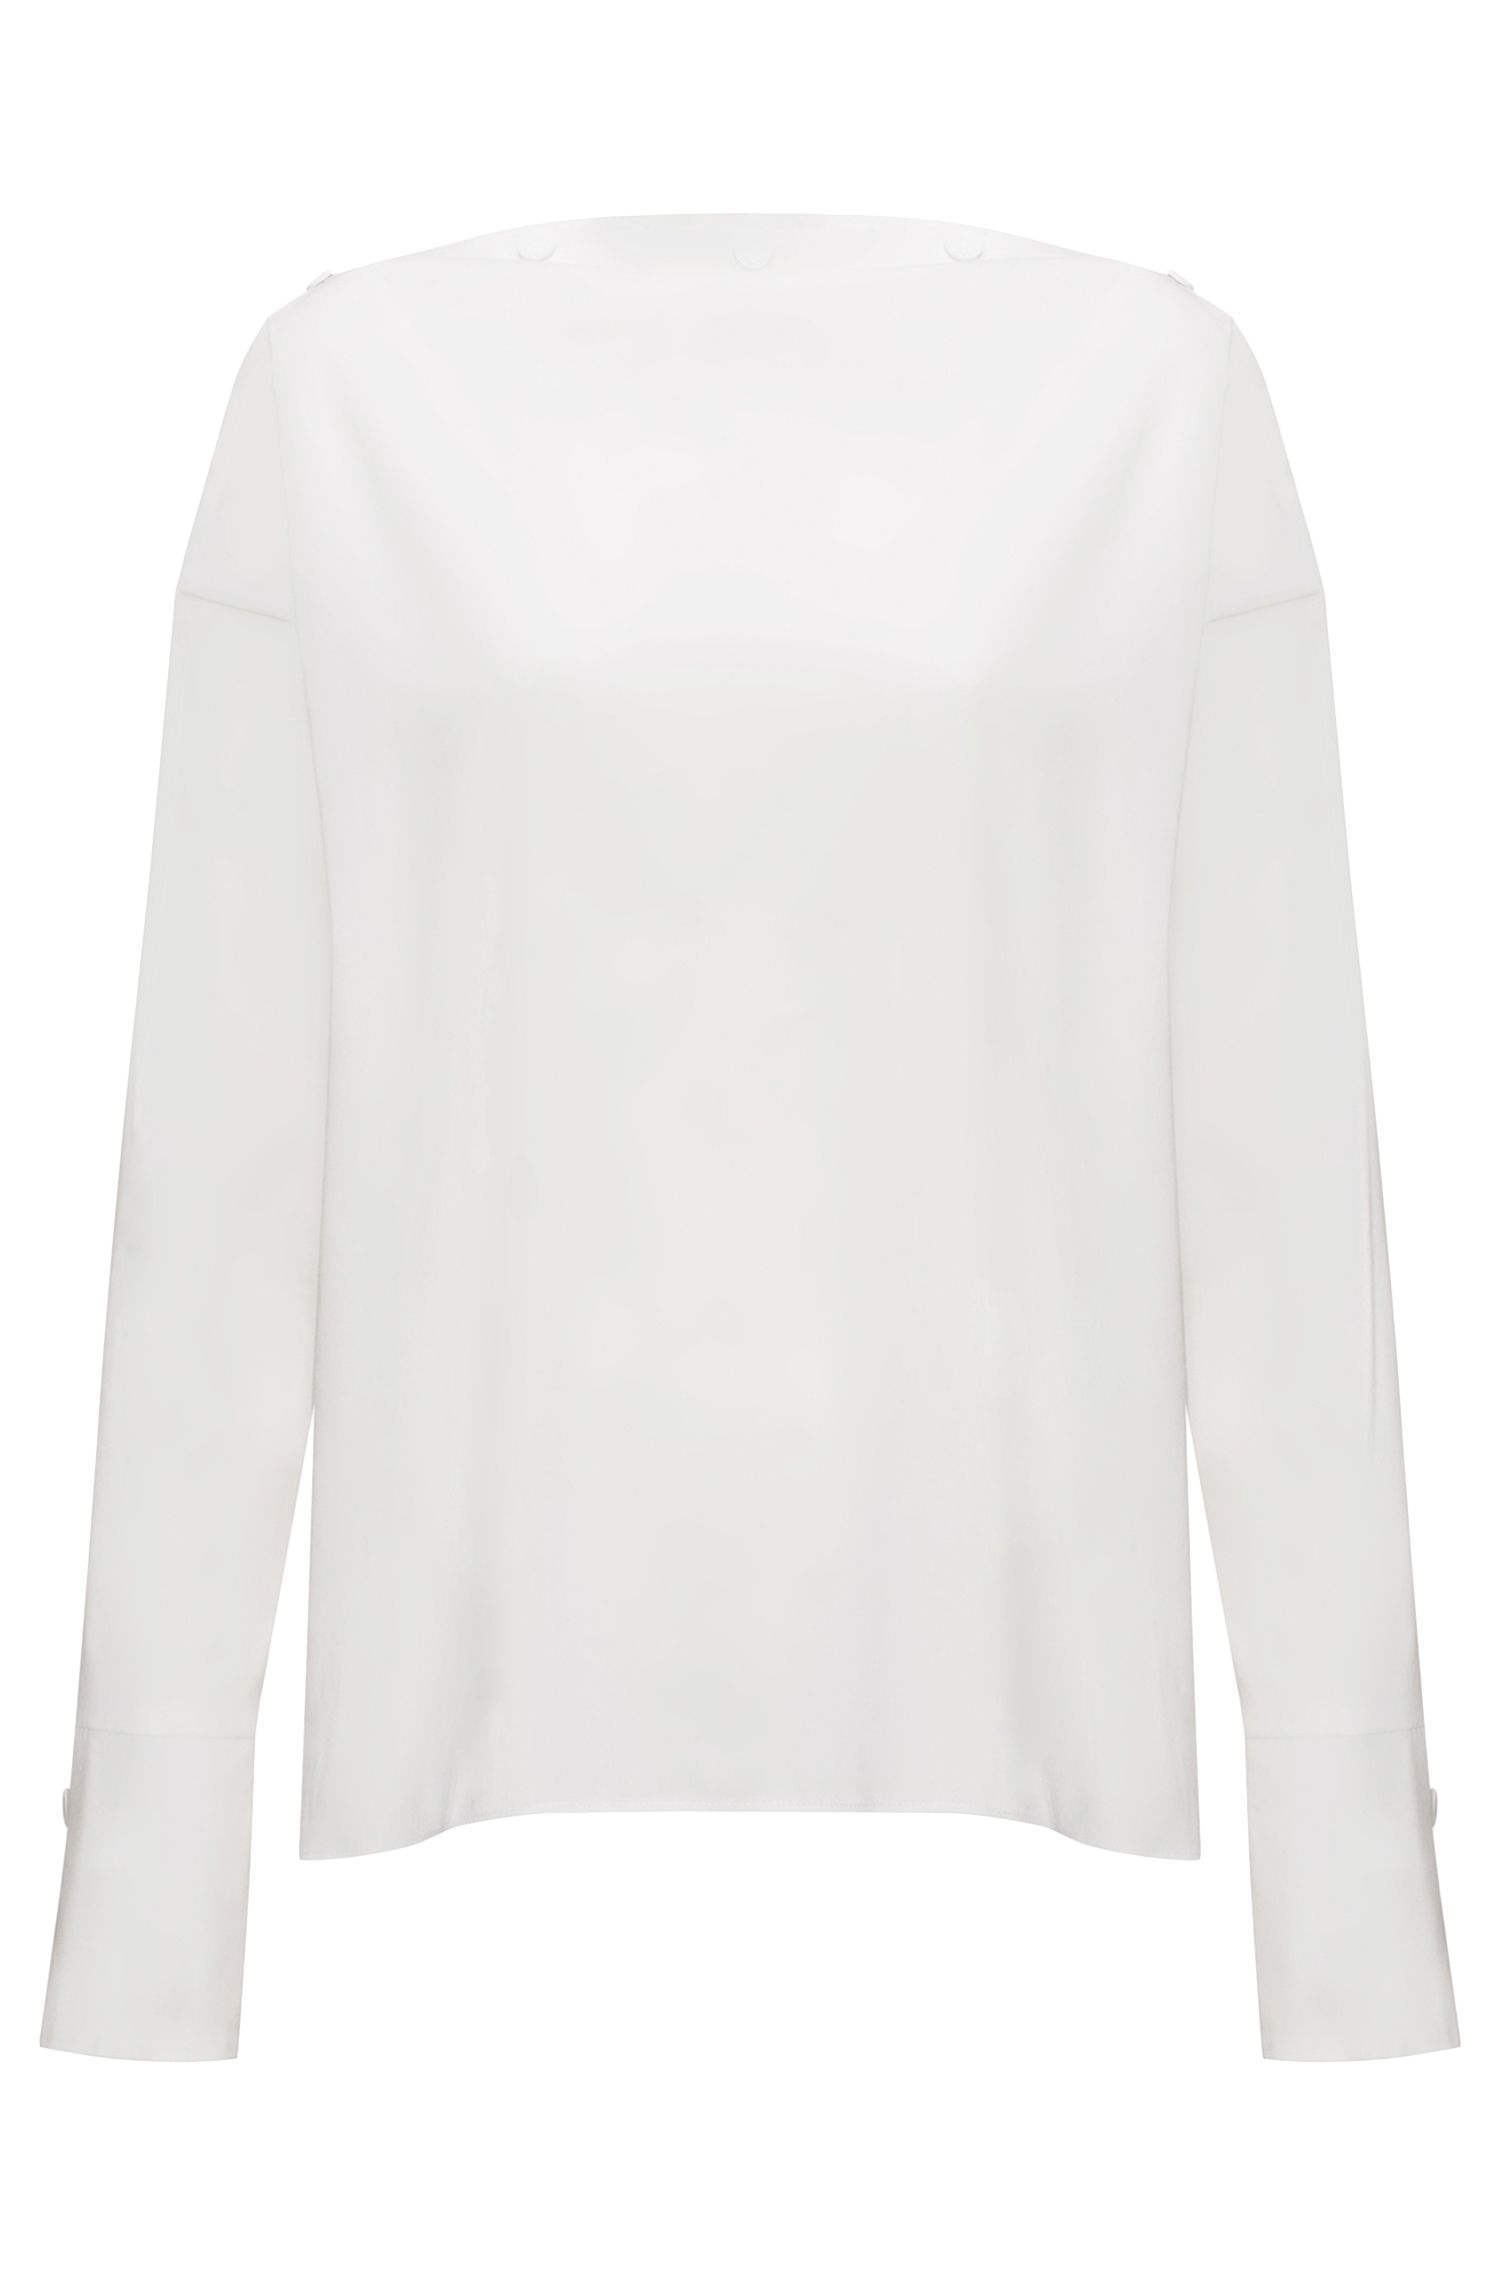 Button-neckline top in a cotton blend